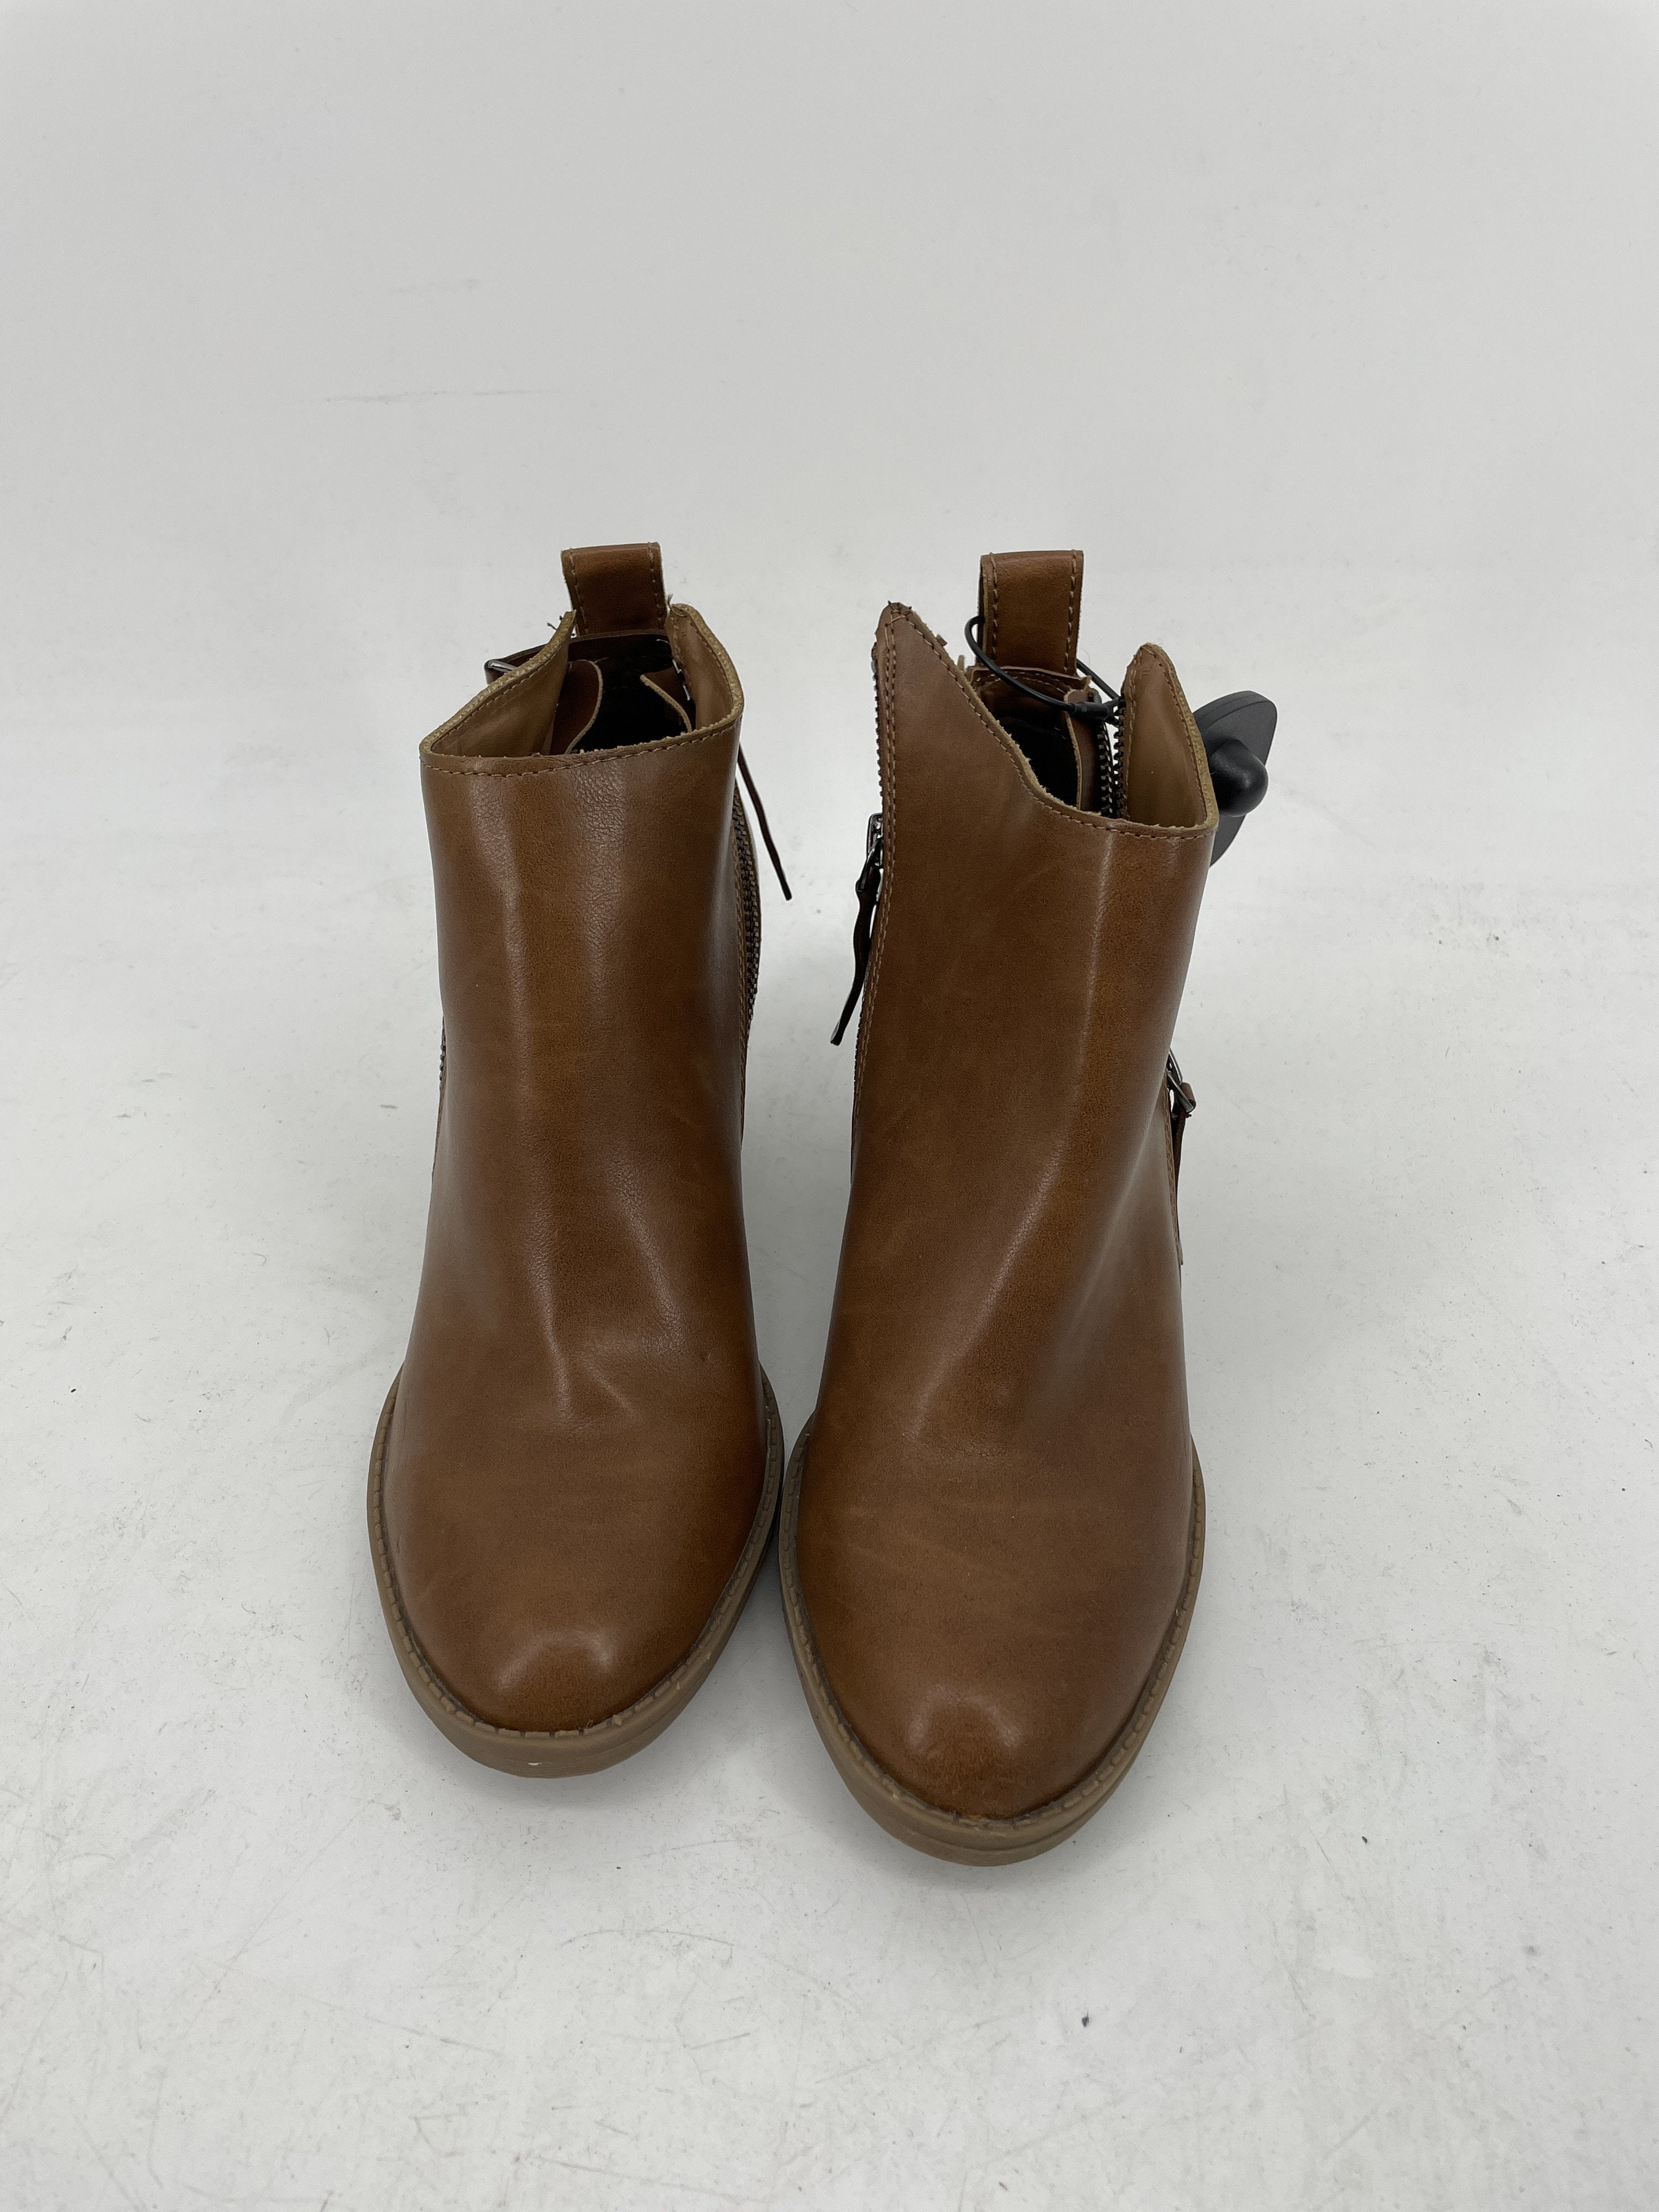 Primary Photo - brand: dv , style: boots ankle , color: brown , size: 8 , sku: 128-3212-49486